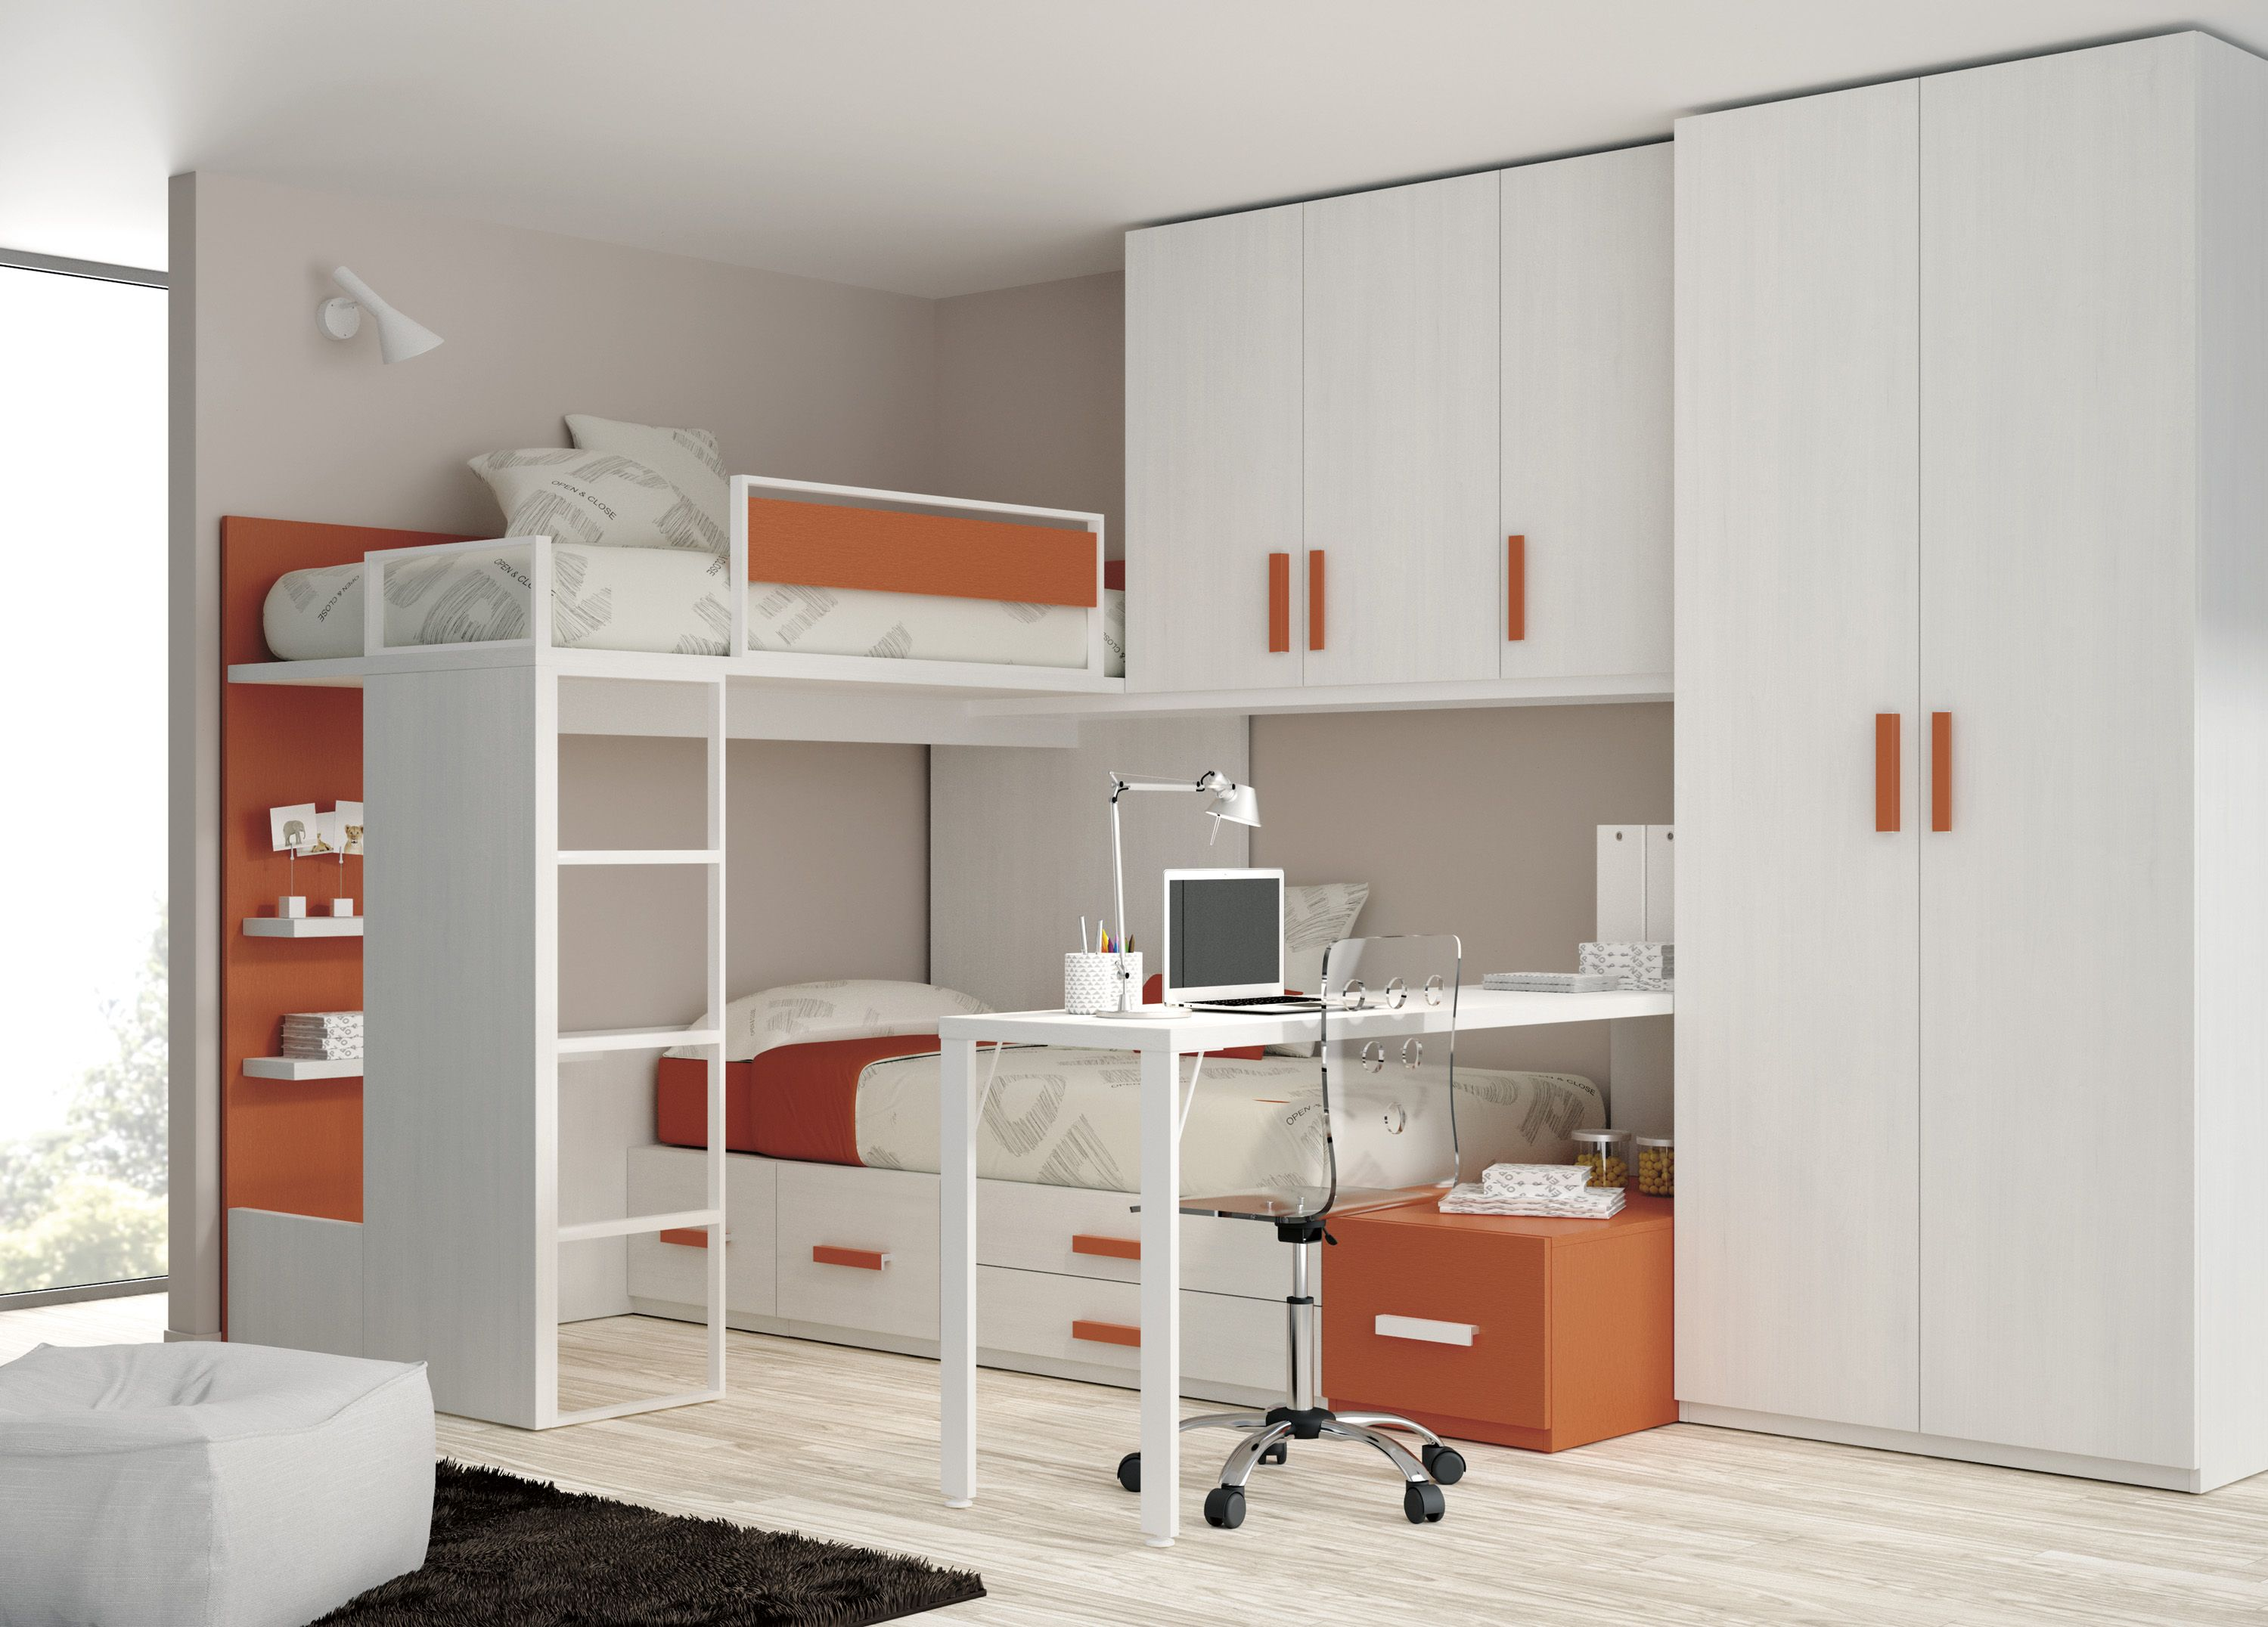 Wondrous White And Orange Themes Kids Bedroom Ideas With Built In Cabinets  And Corner Bunk Beds Added Laptop Desk As Modern Small Bedroom Decors